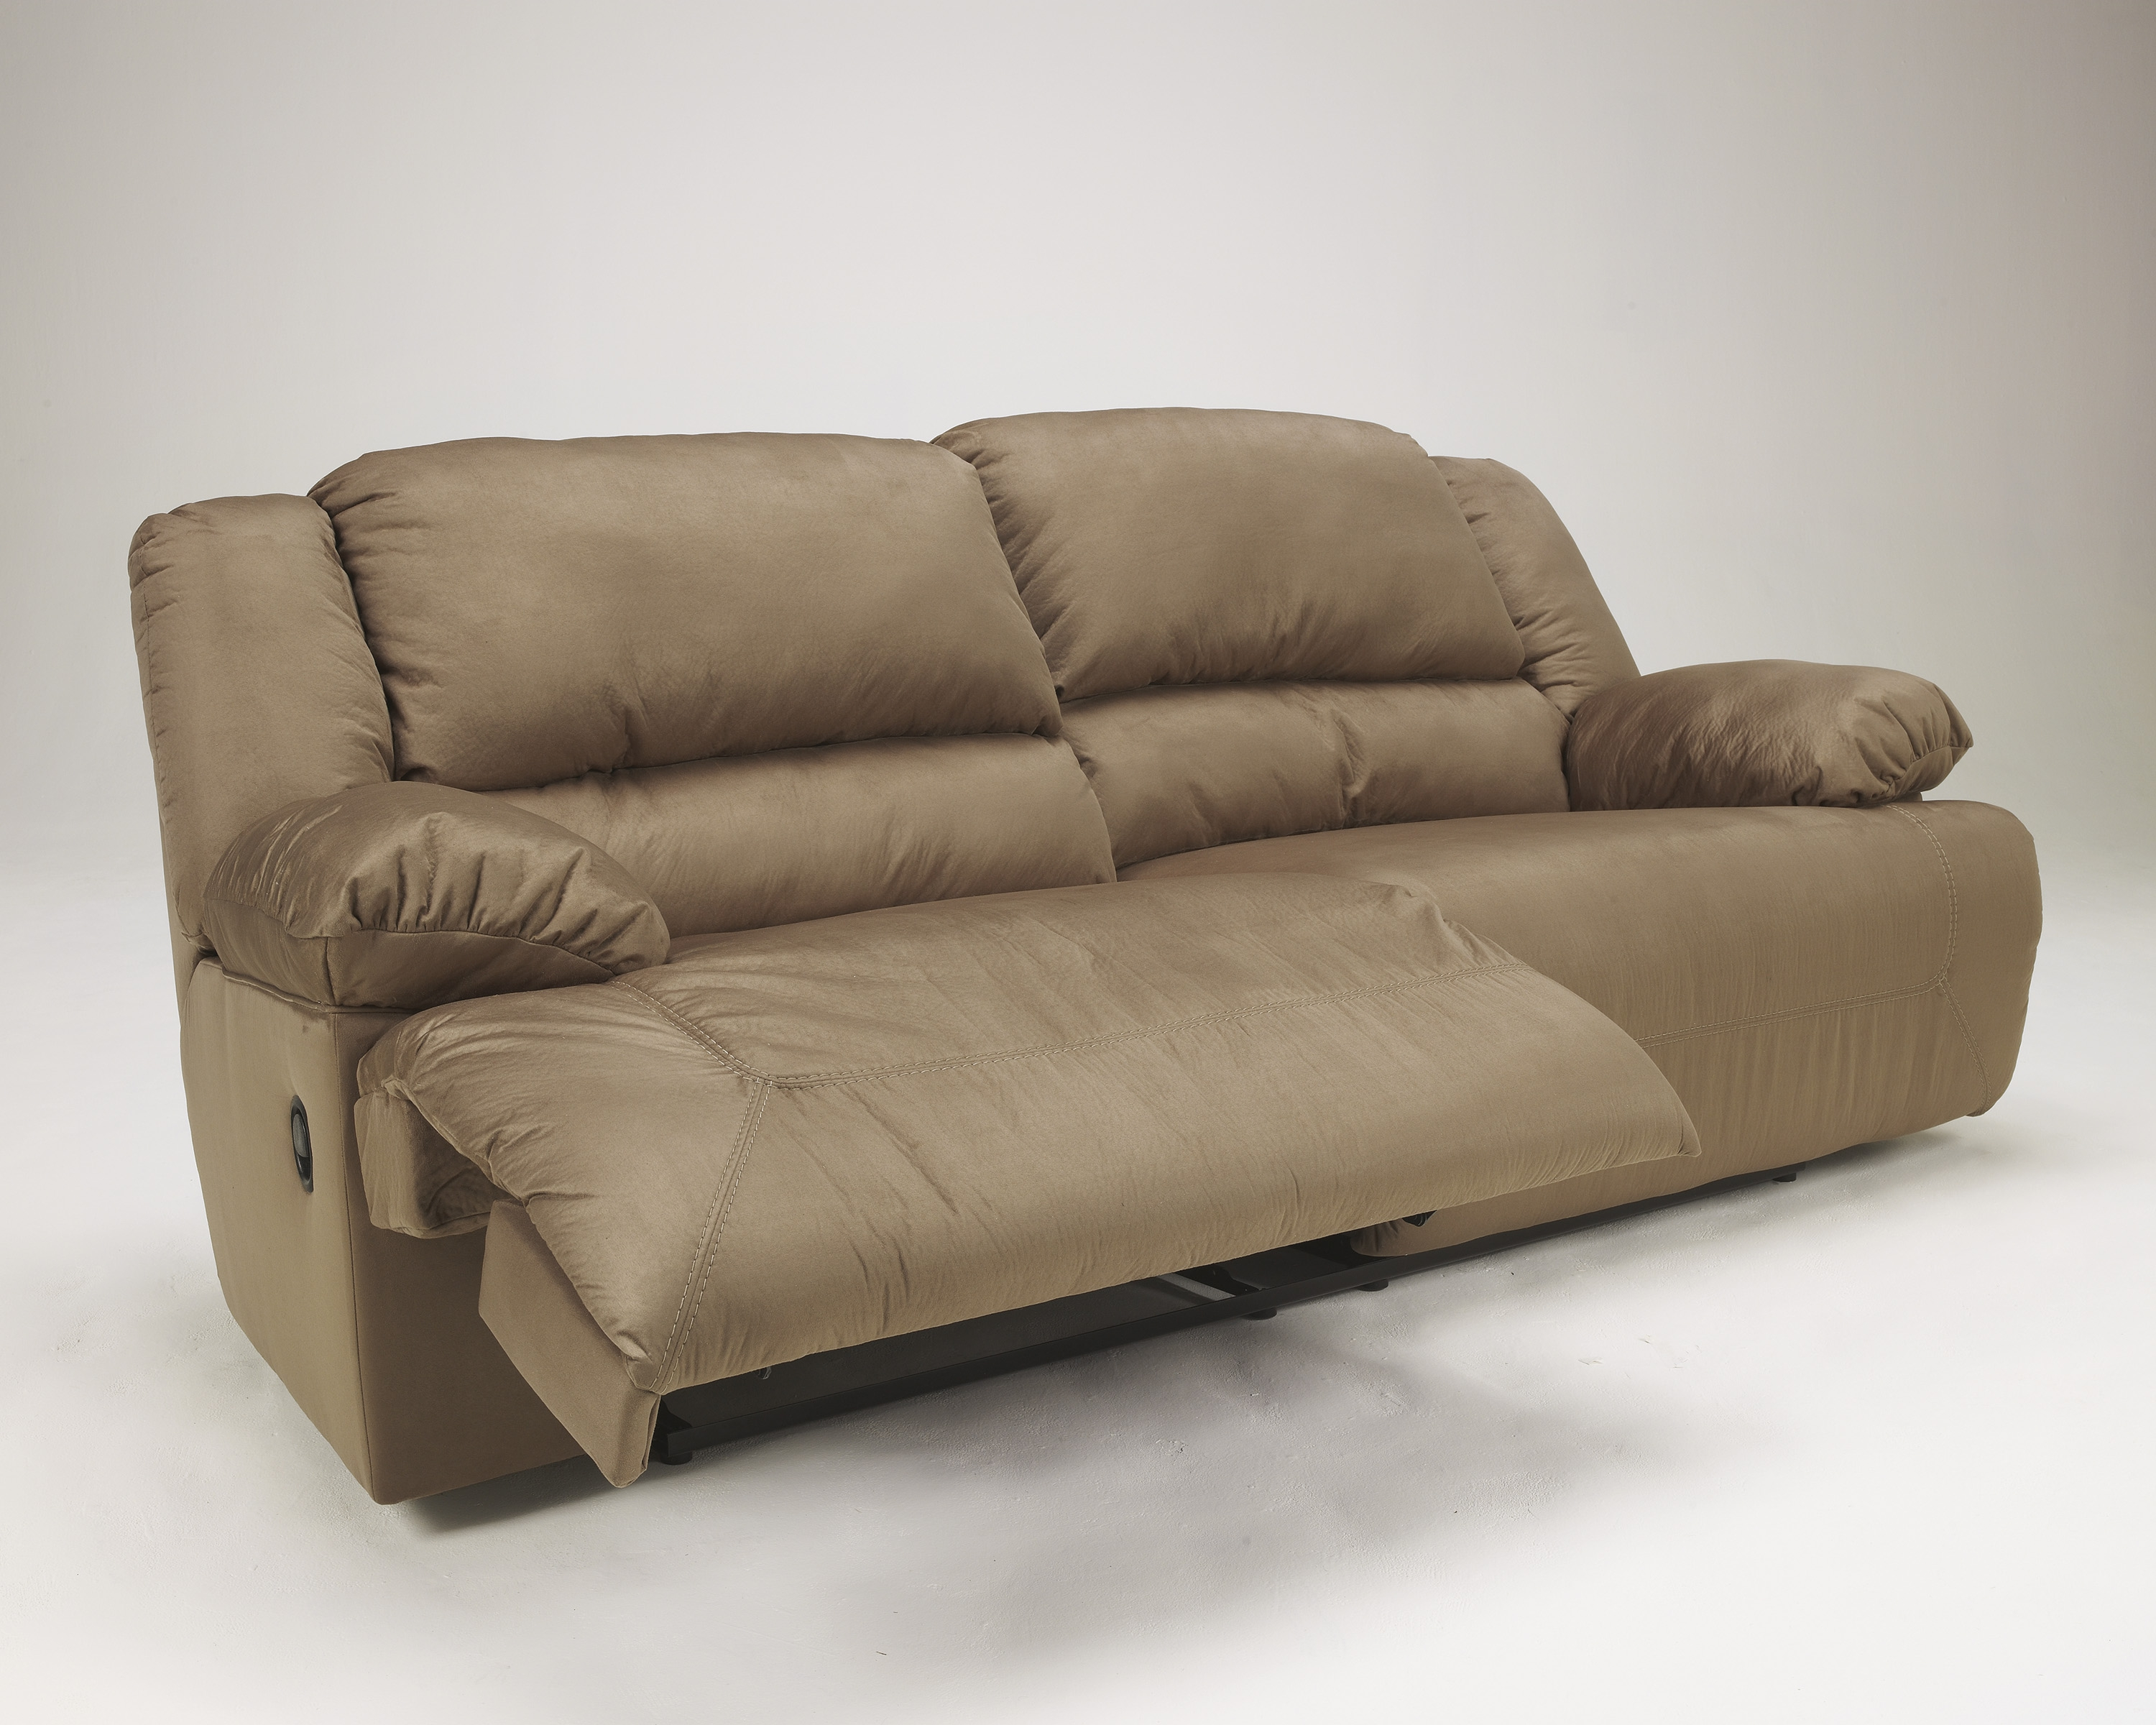 Exceptionnel ... Two Seat Reclining Sofa Click To Enlarge Click To Enlarge Click To  Enlarge ...